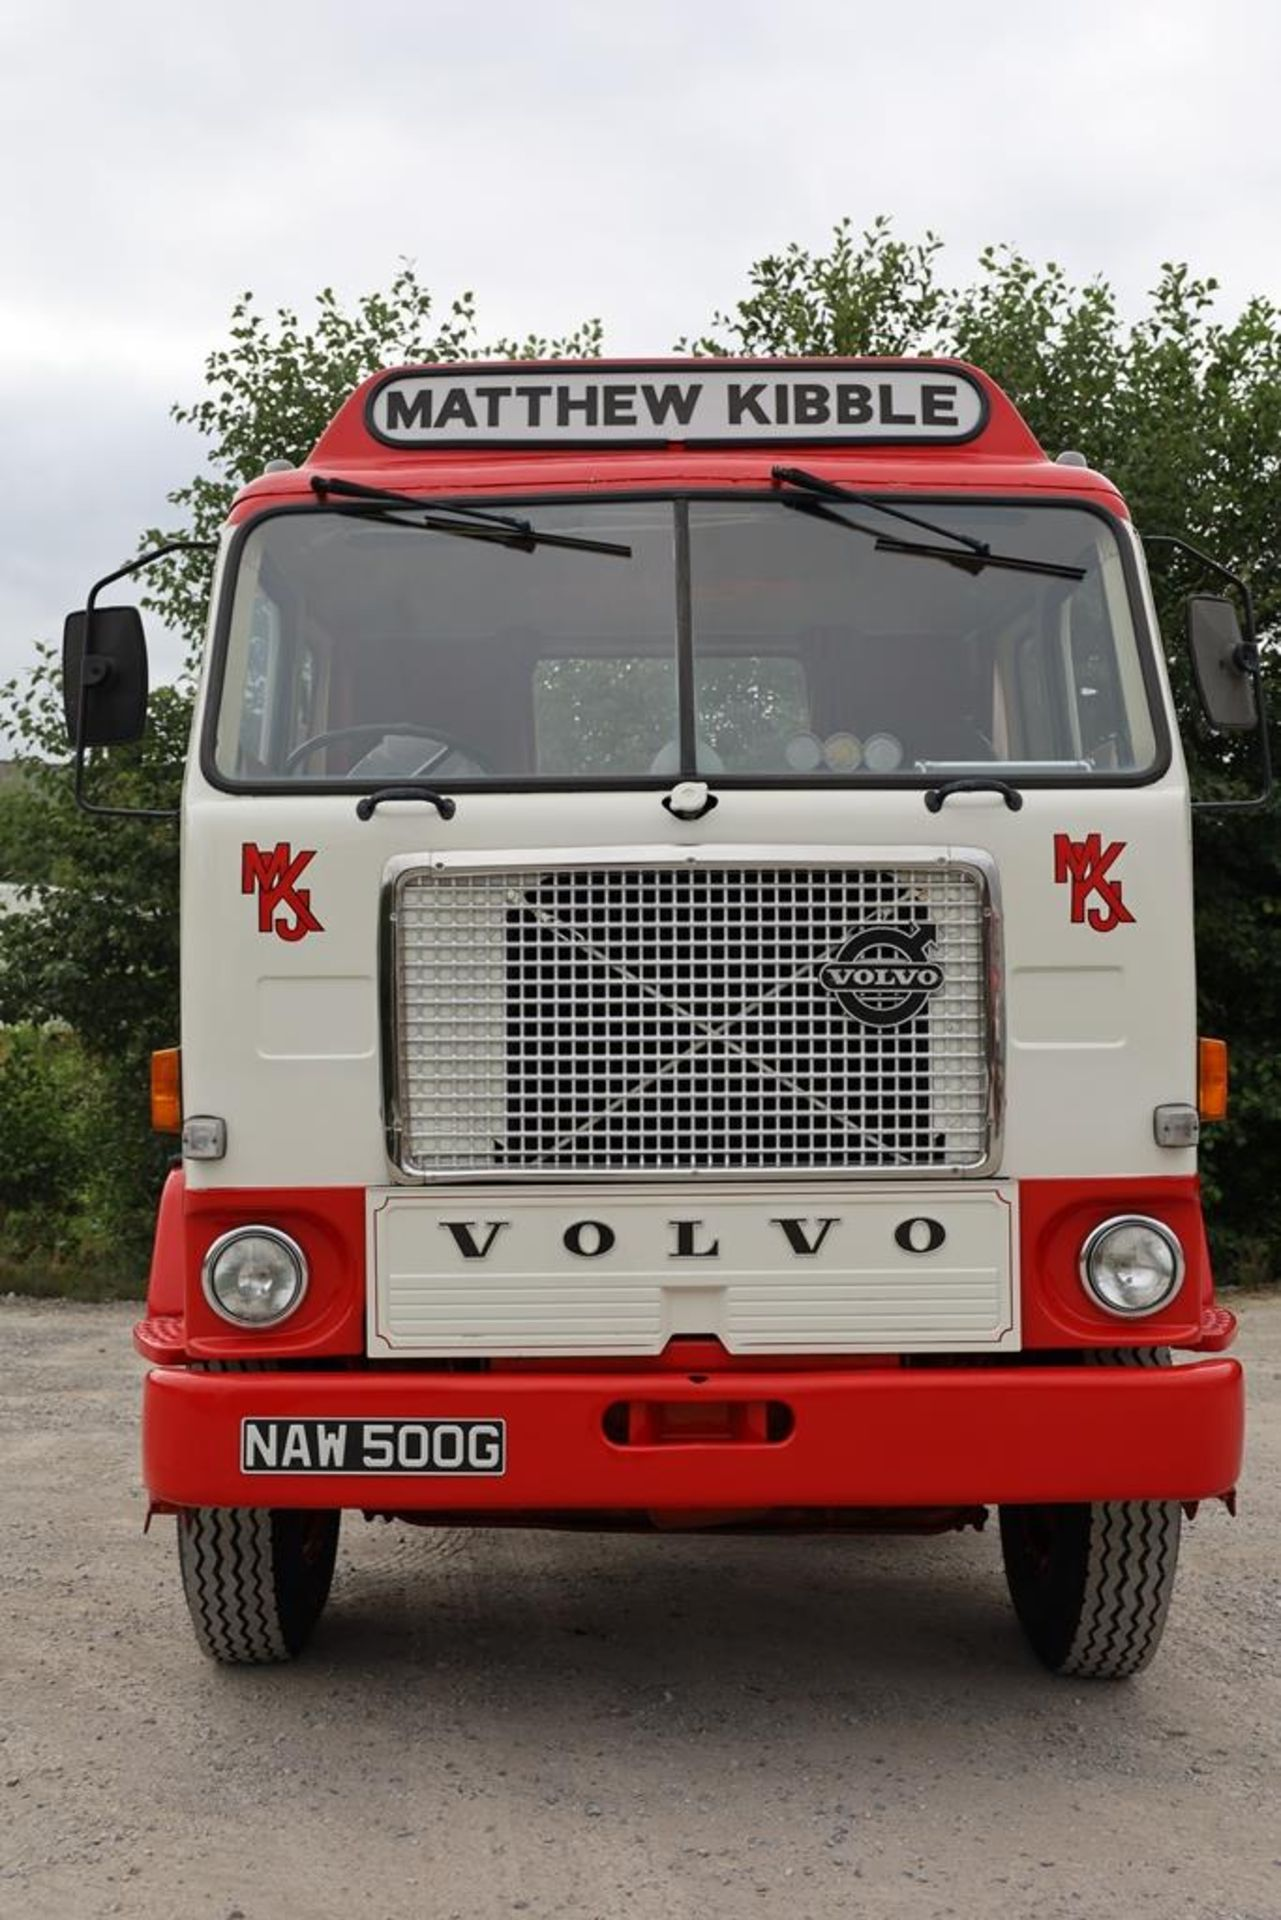 Volvo F88.240 4X2 TRACTOR UNIT, registration no. NAW 500G, date first registered 13/08/1968, fully - Image 6 of 11